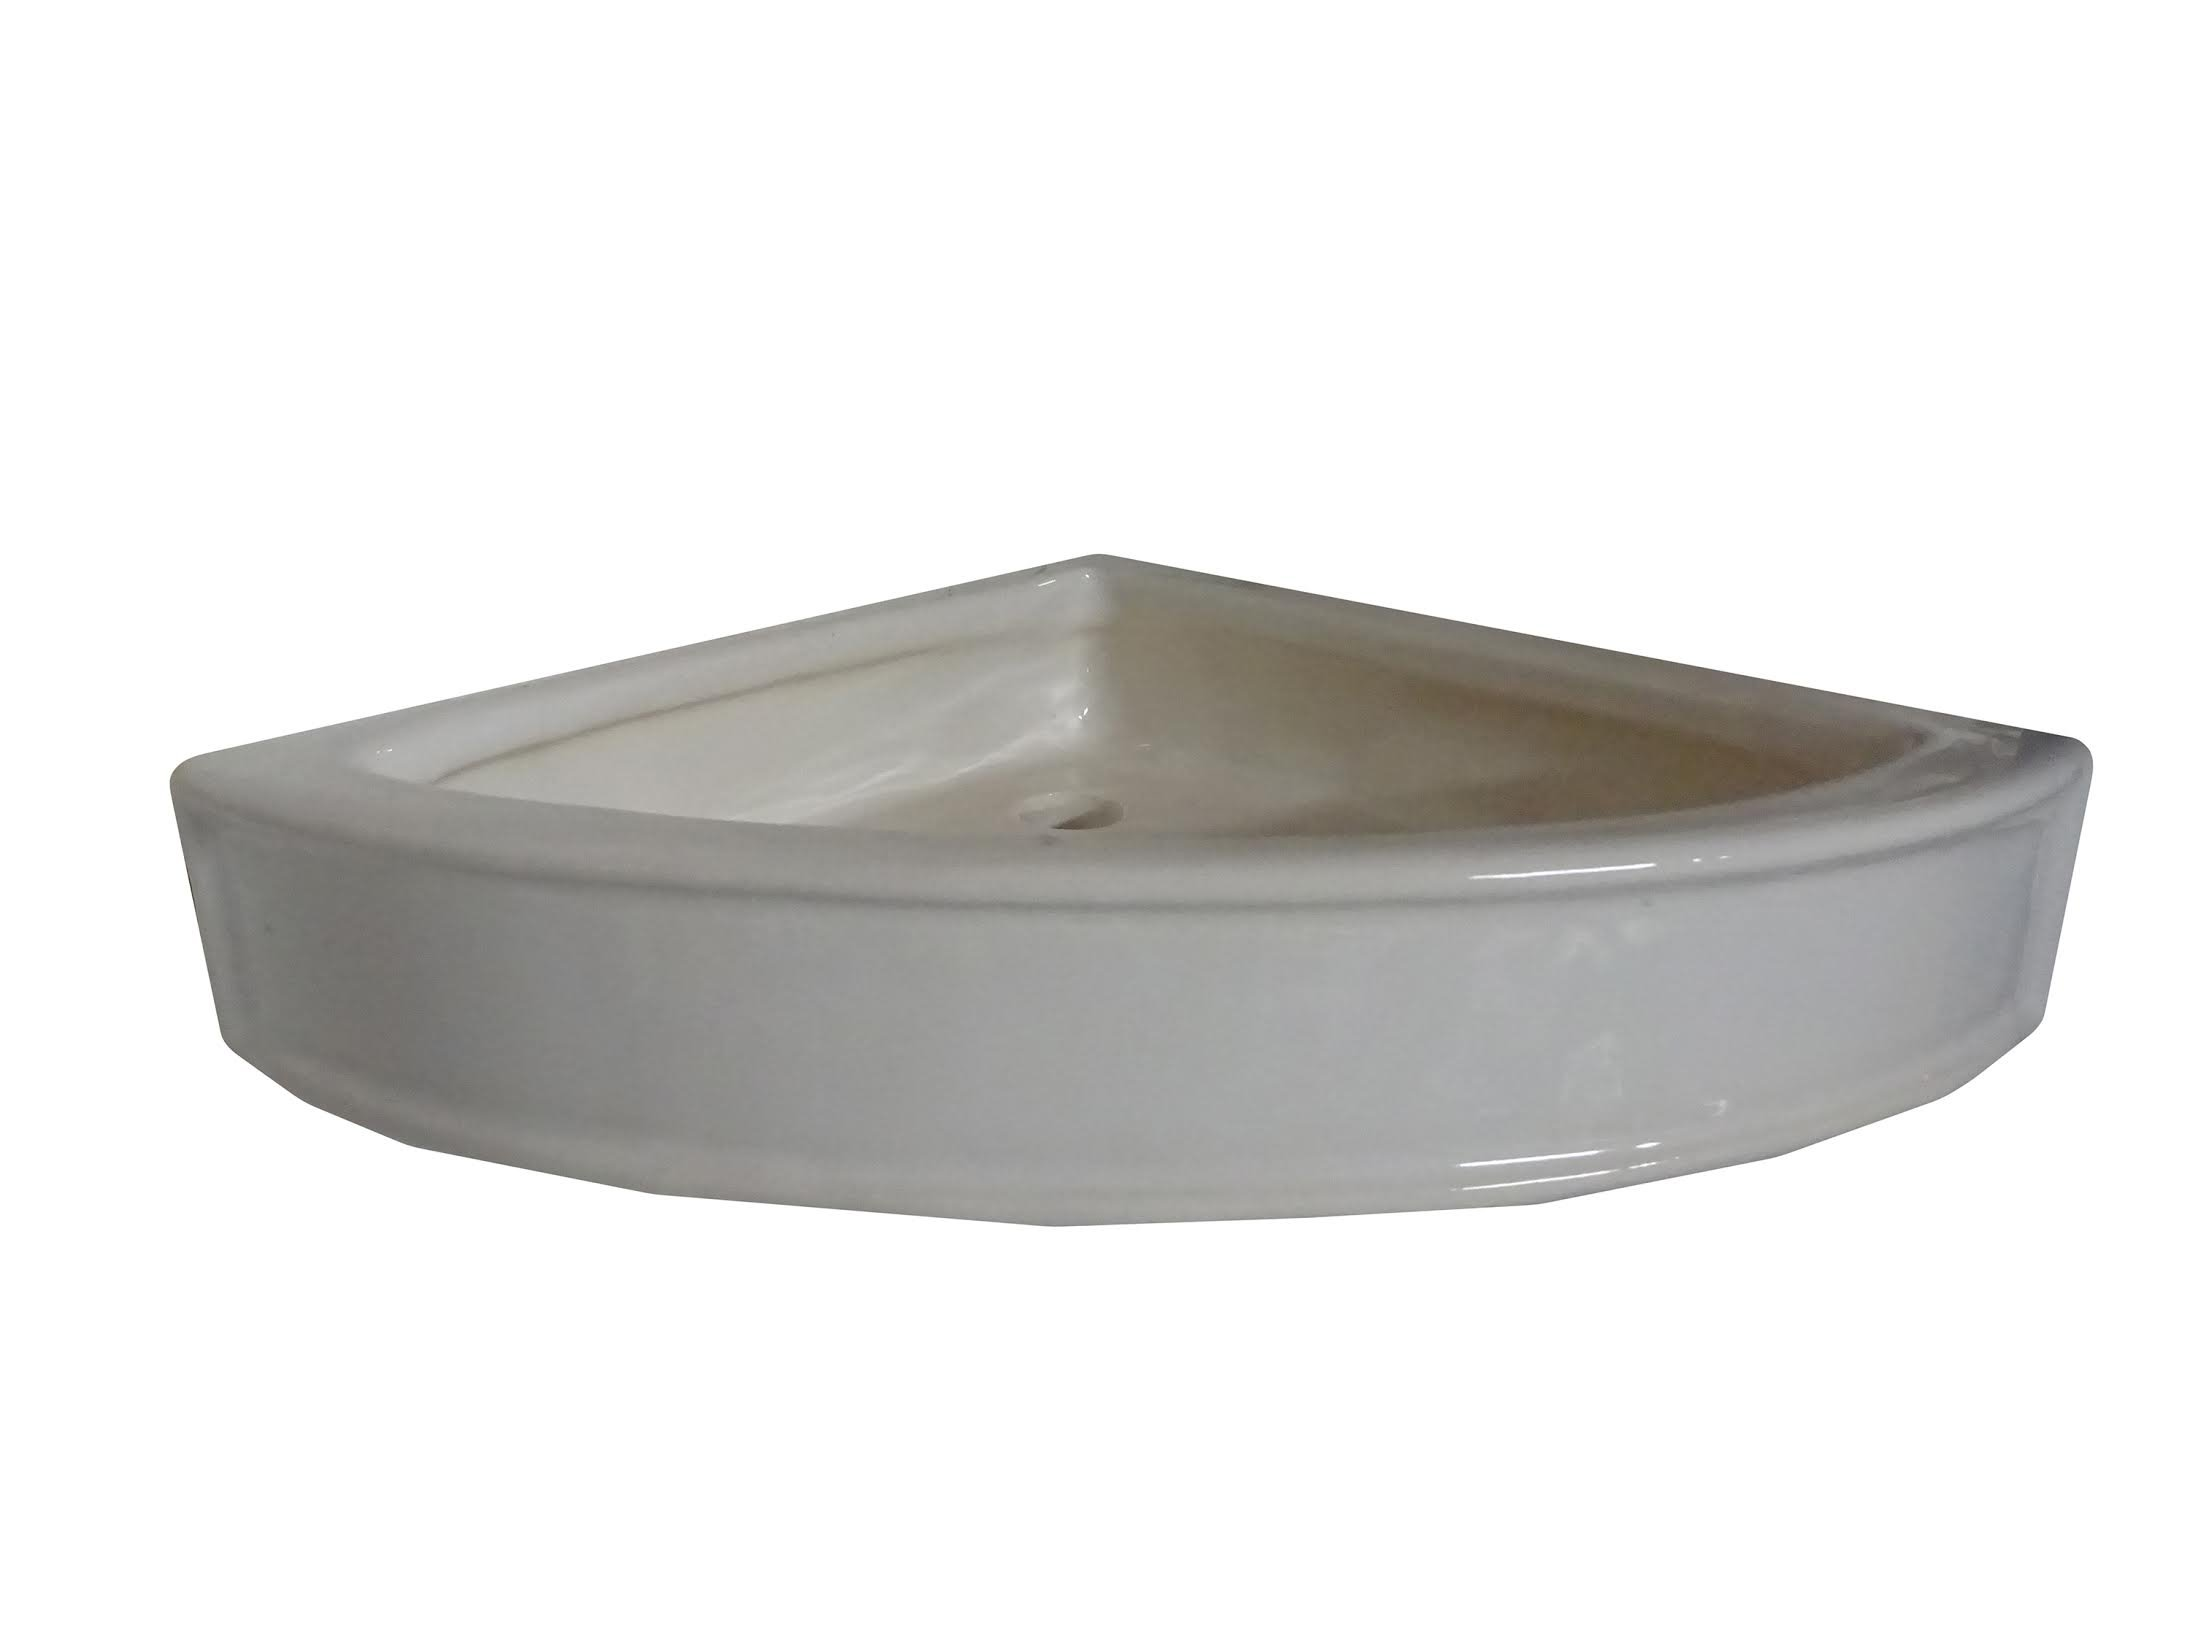 Art in Sink 2CB8/2001 Barthroom Corner Wall Basket Ceramic 8'' Shower, White by Art in Sink